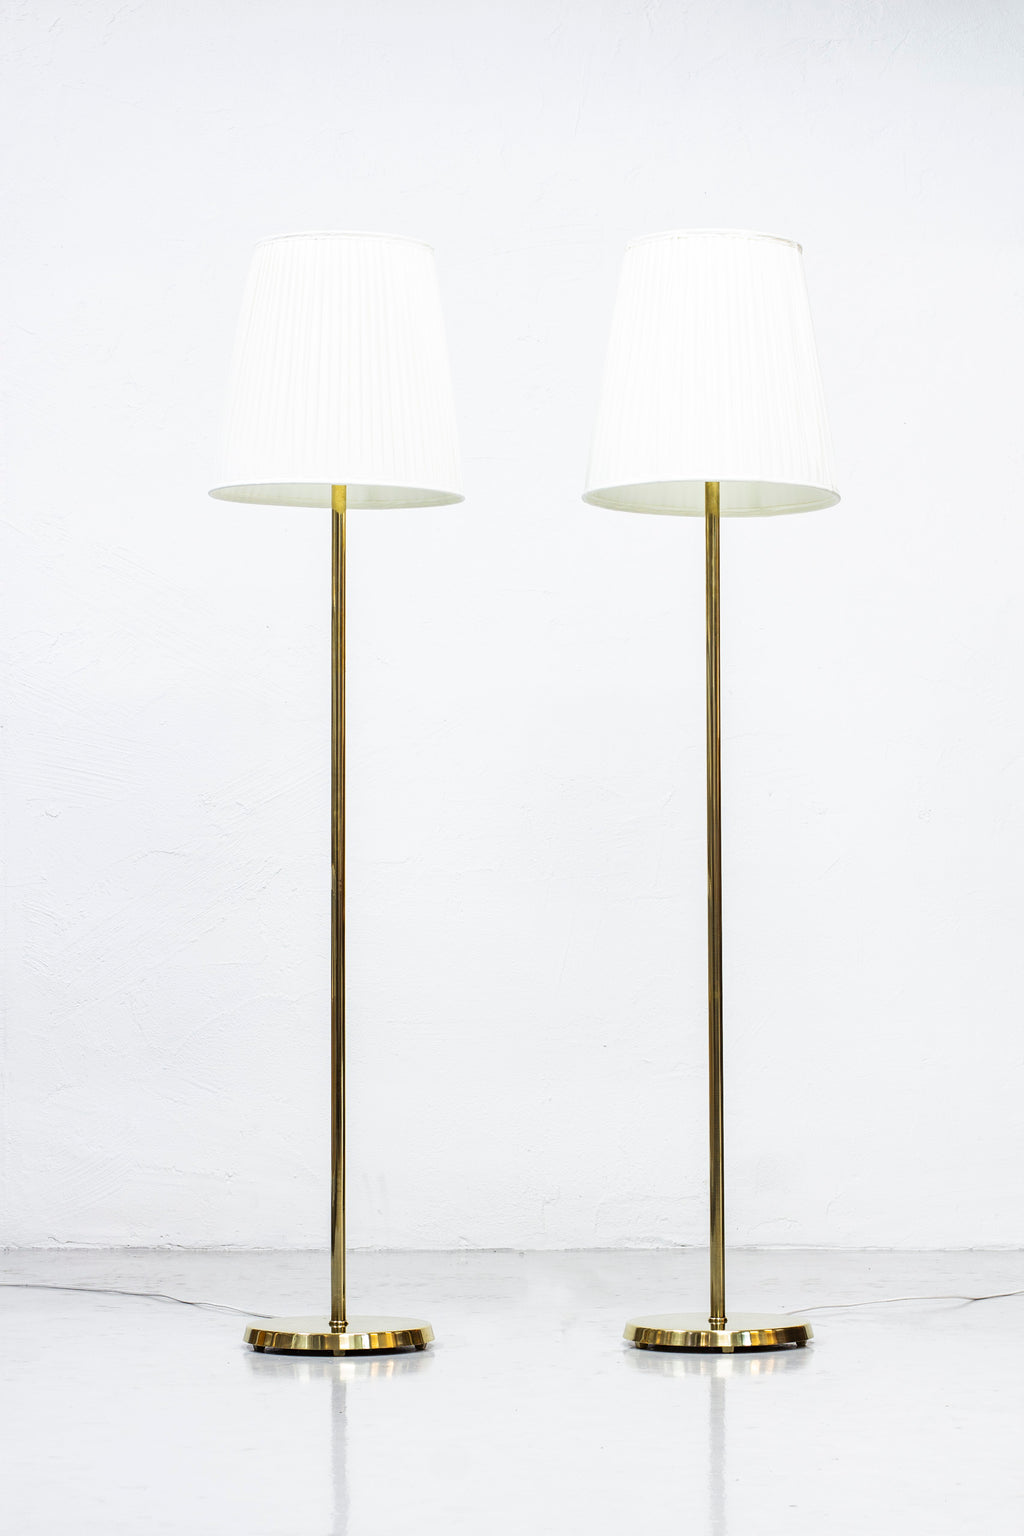 1950s floor lamps by ASEA